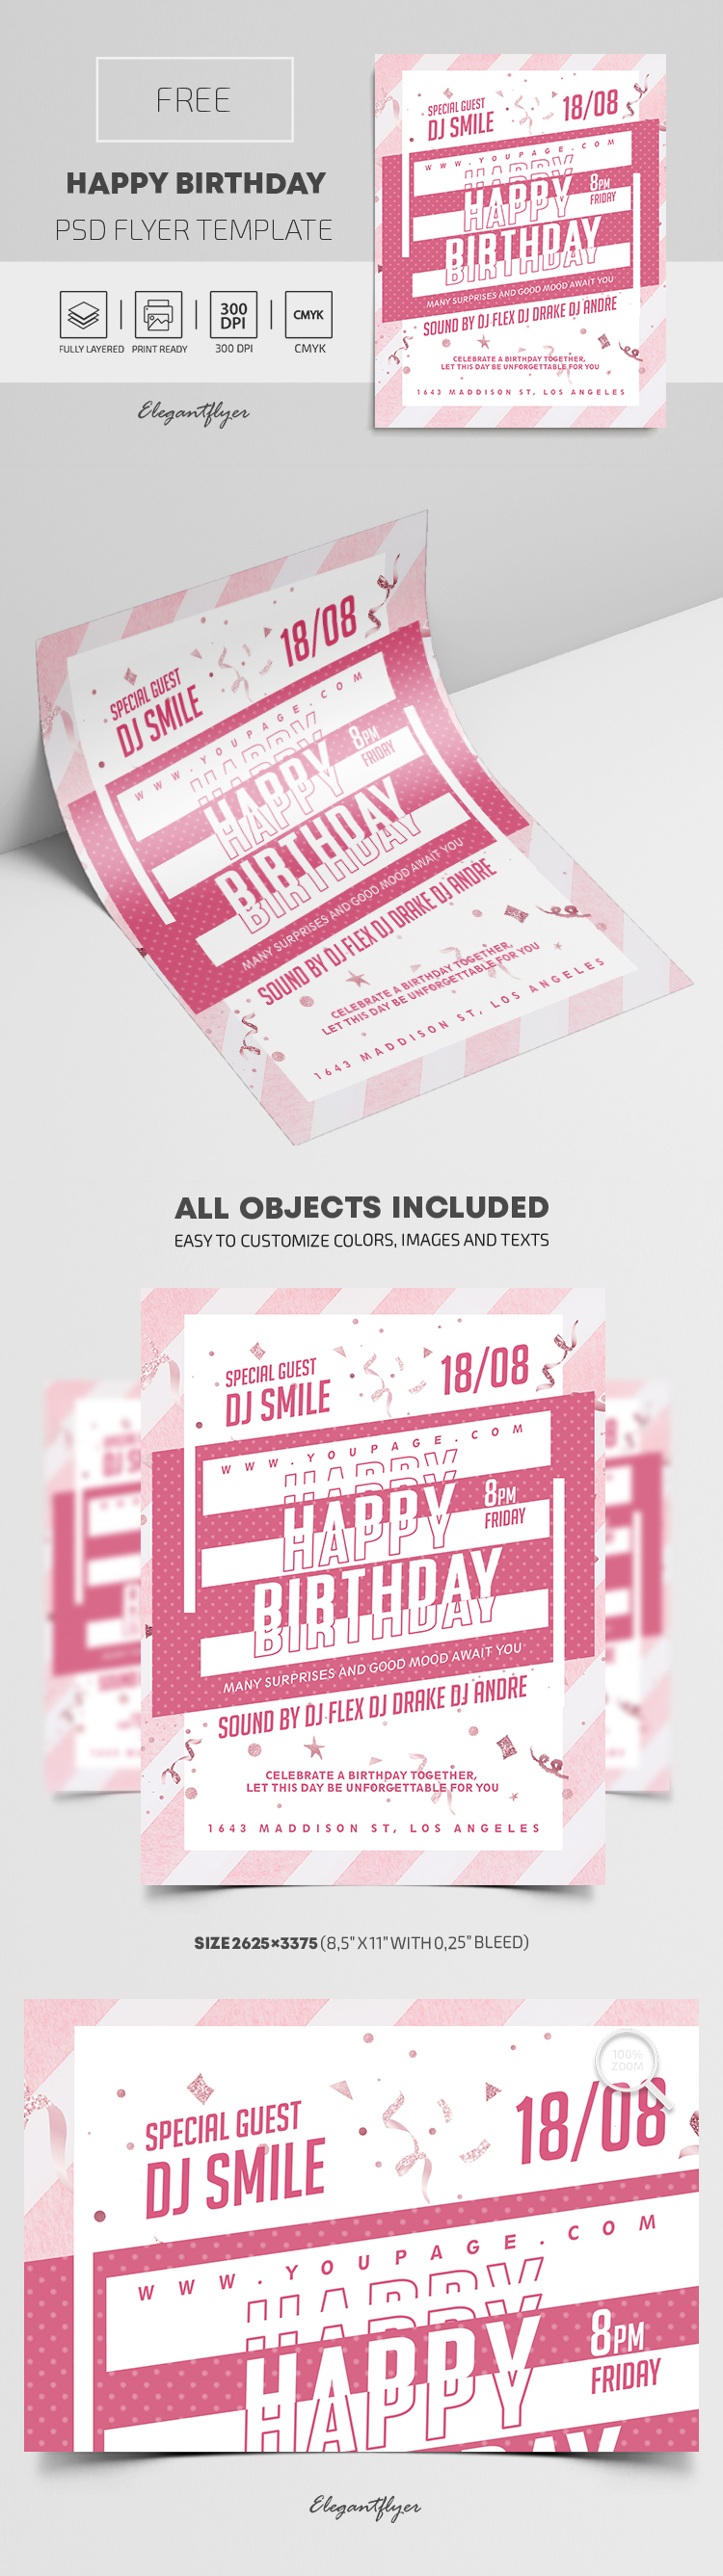 Happy Birthday – Free Flyer PSD Template